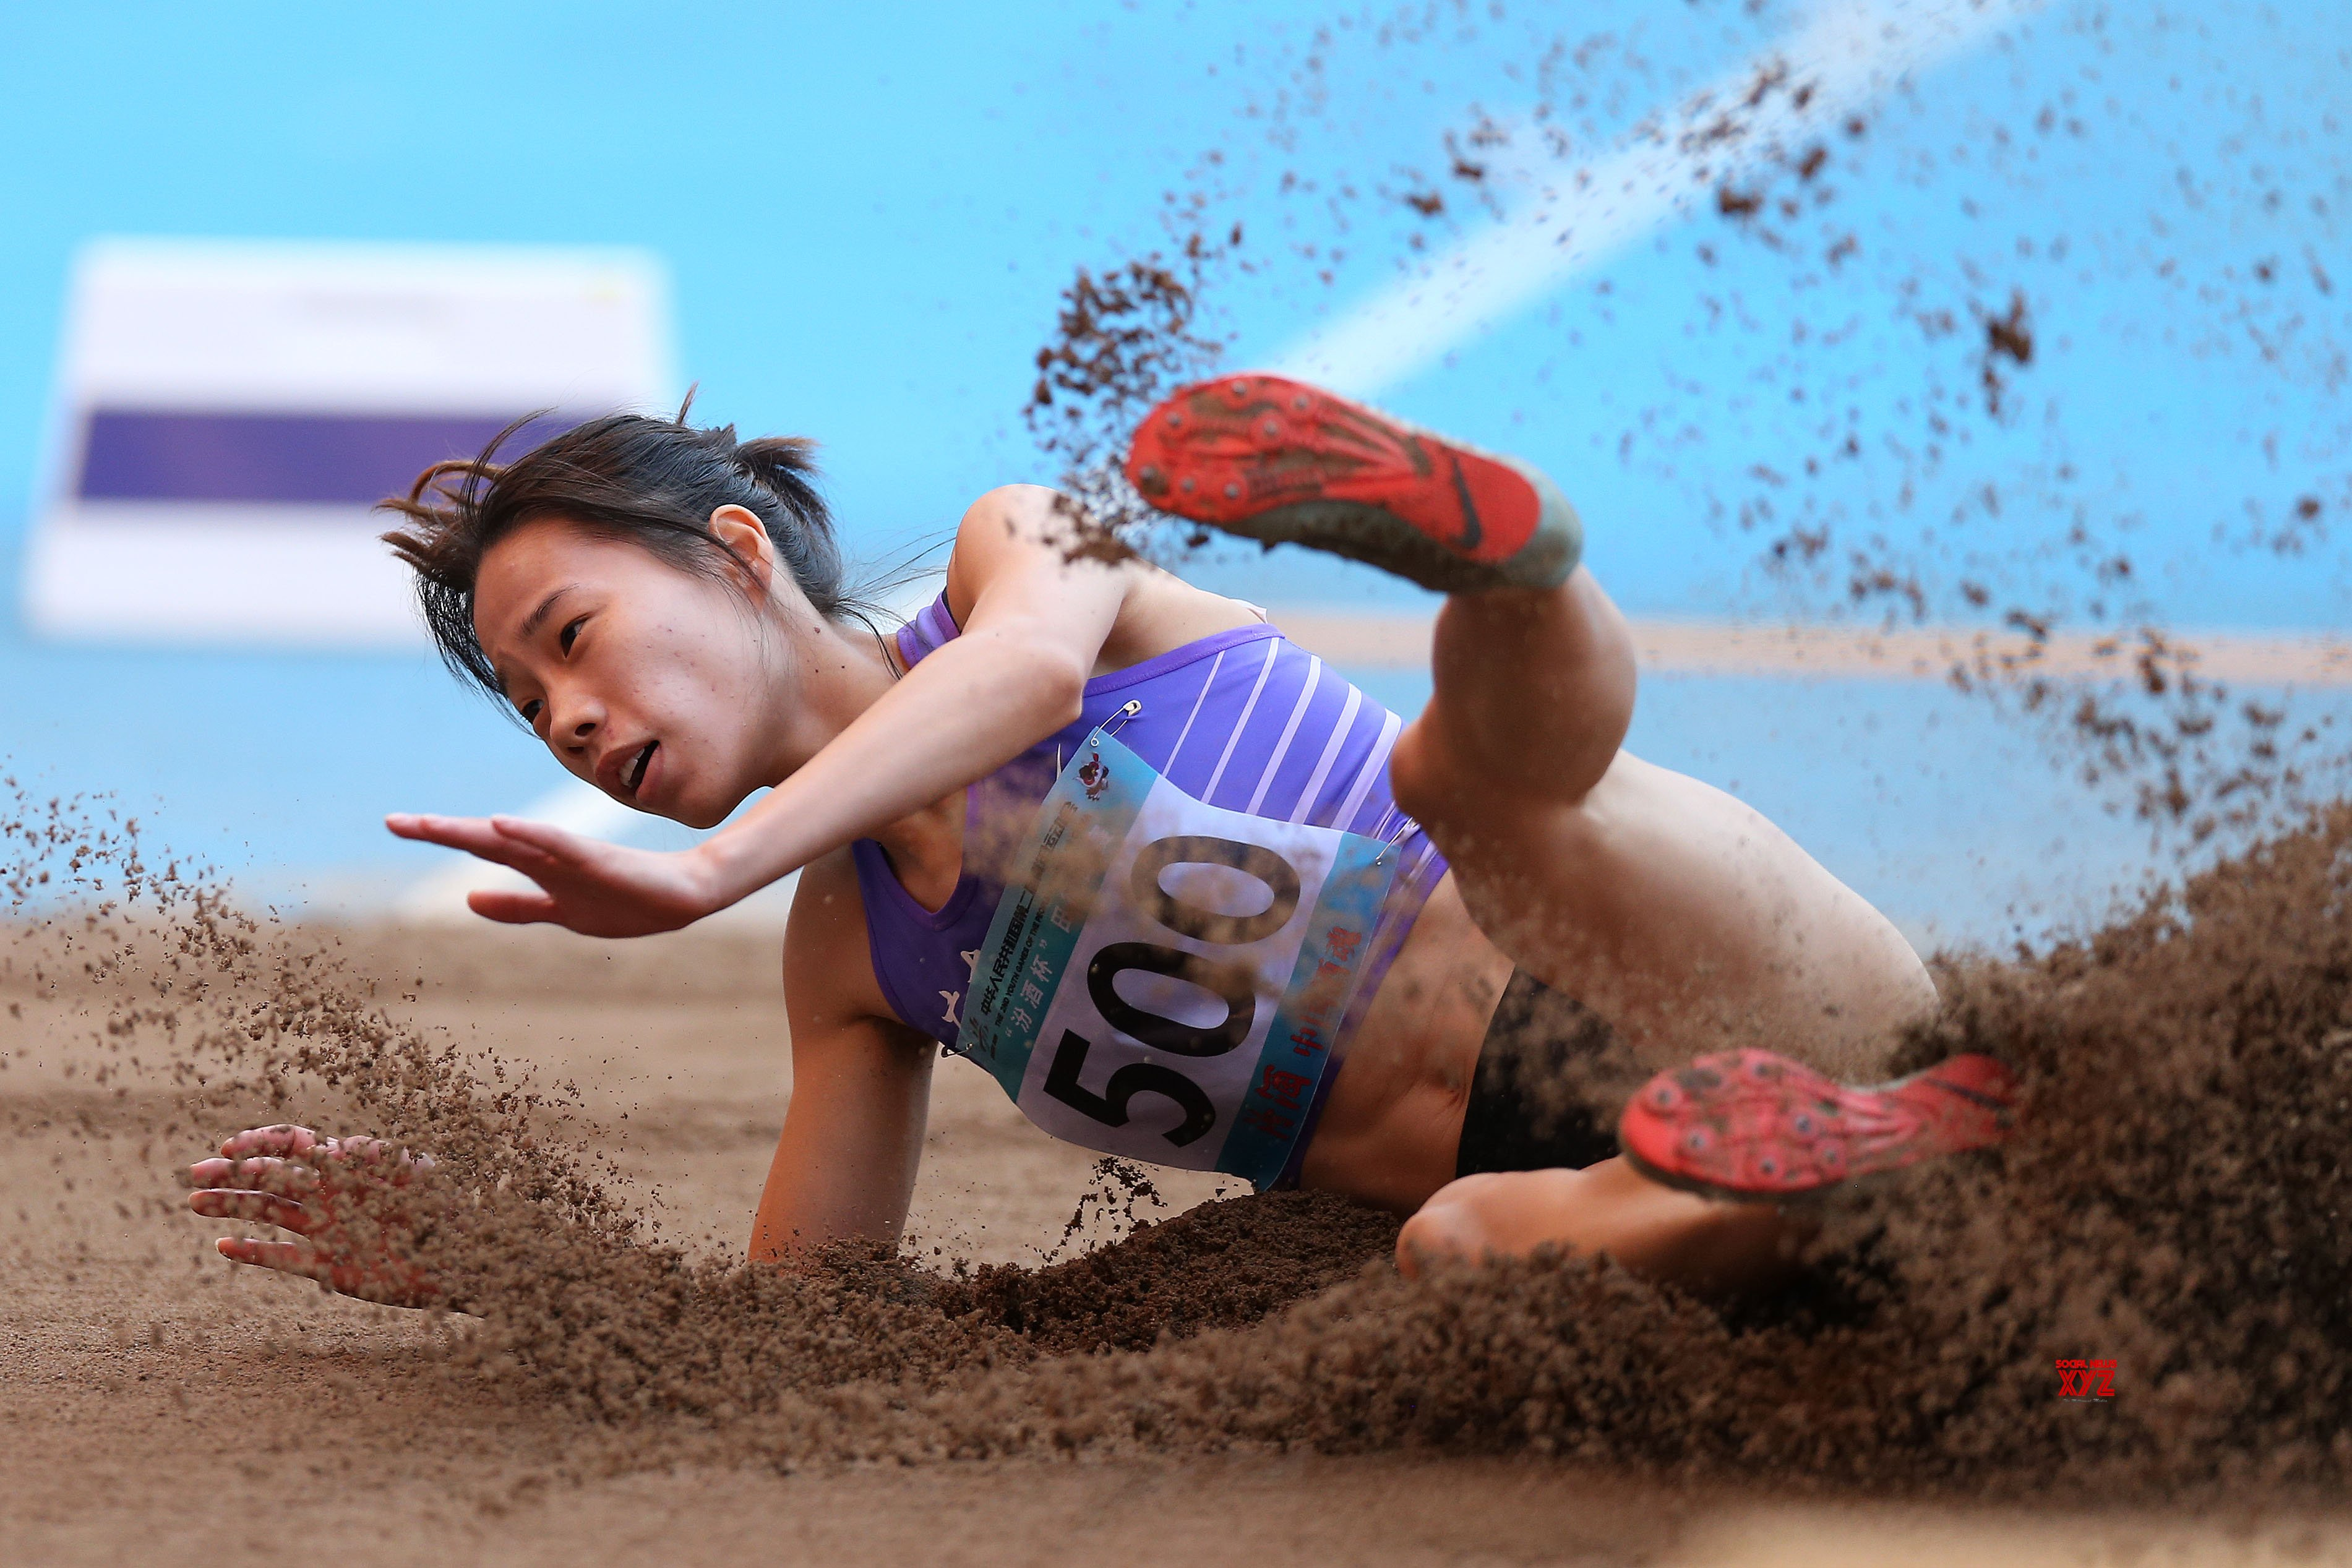 CHINA - SHANXI - TAIYUAN - 2ND YOUTH GAMES - ATHLETICS #Gallery